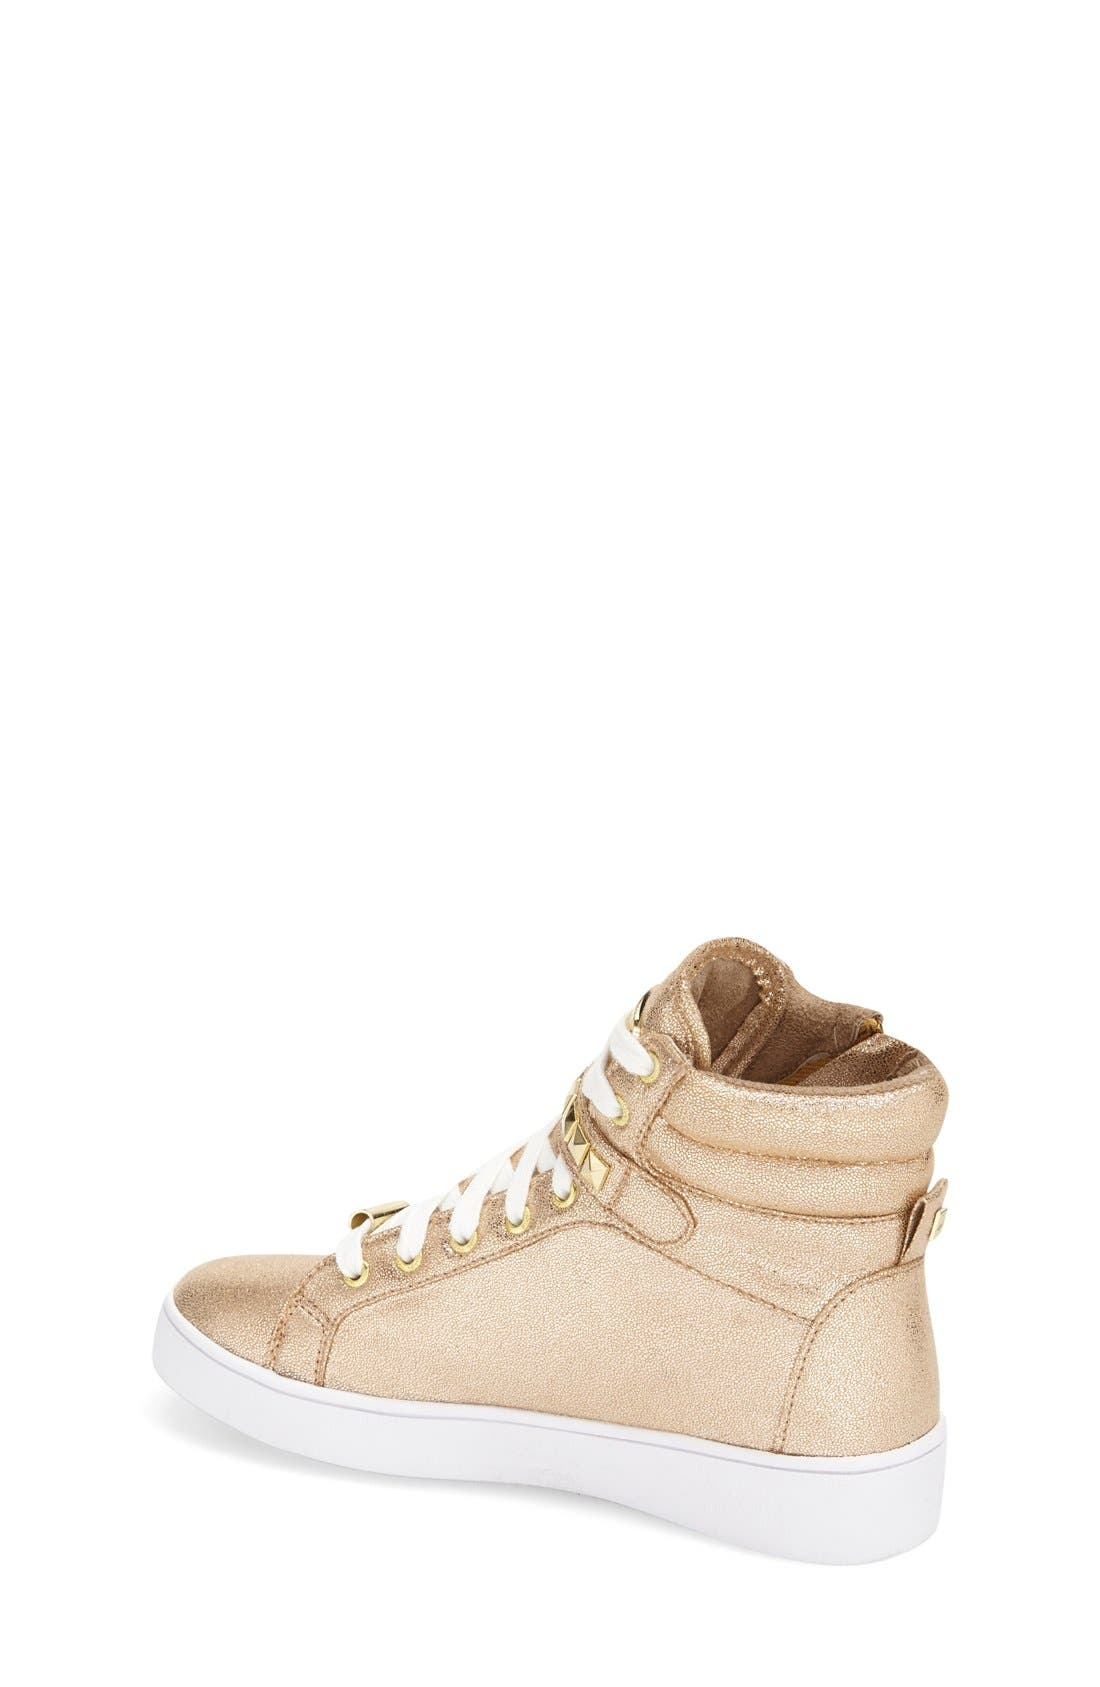 'Ivy Rory' High Top Sneaker,                             Alternate thumbnail 8, color,